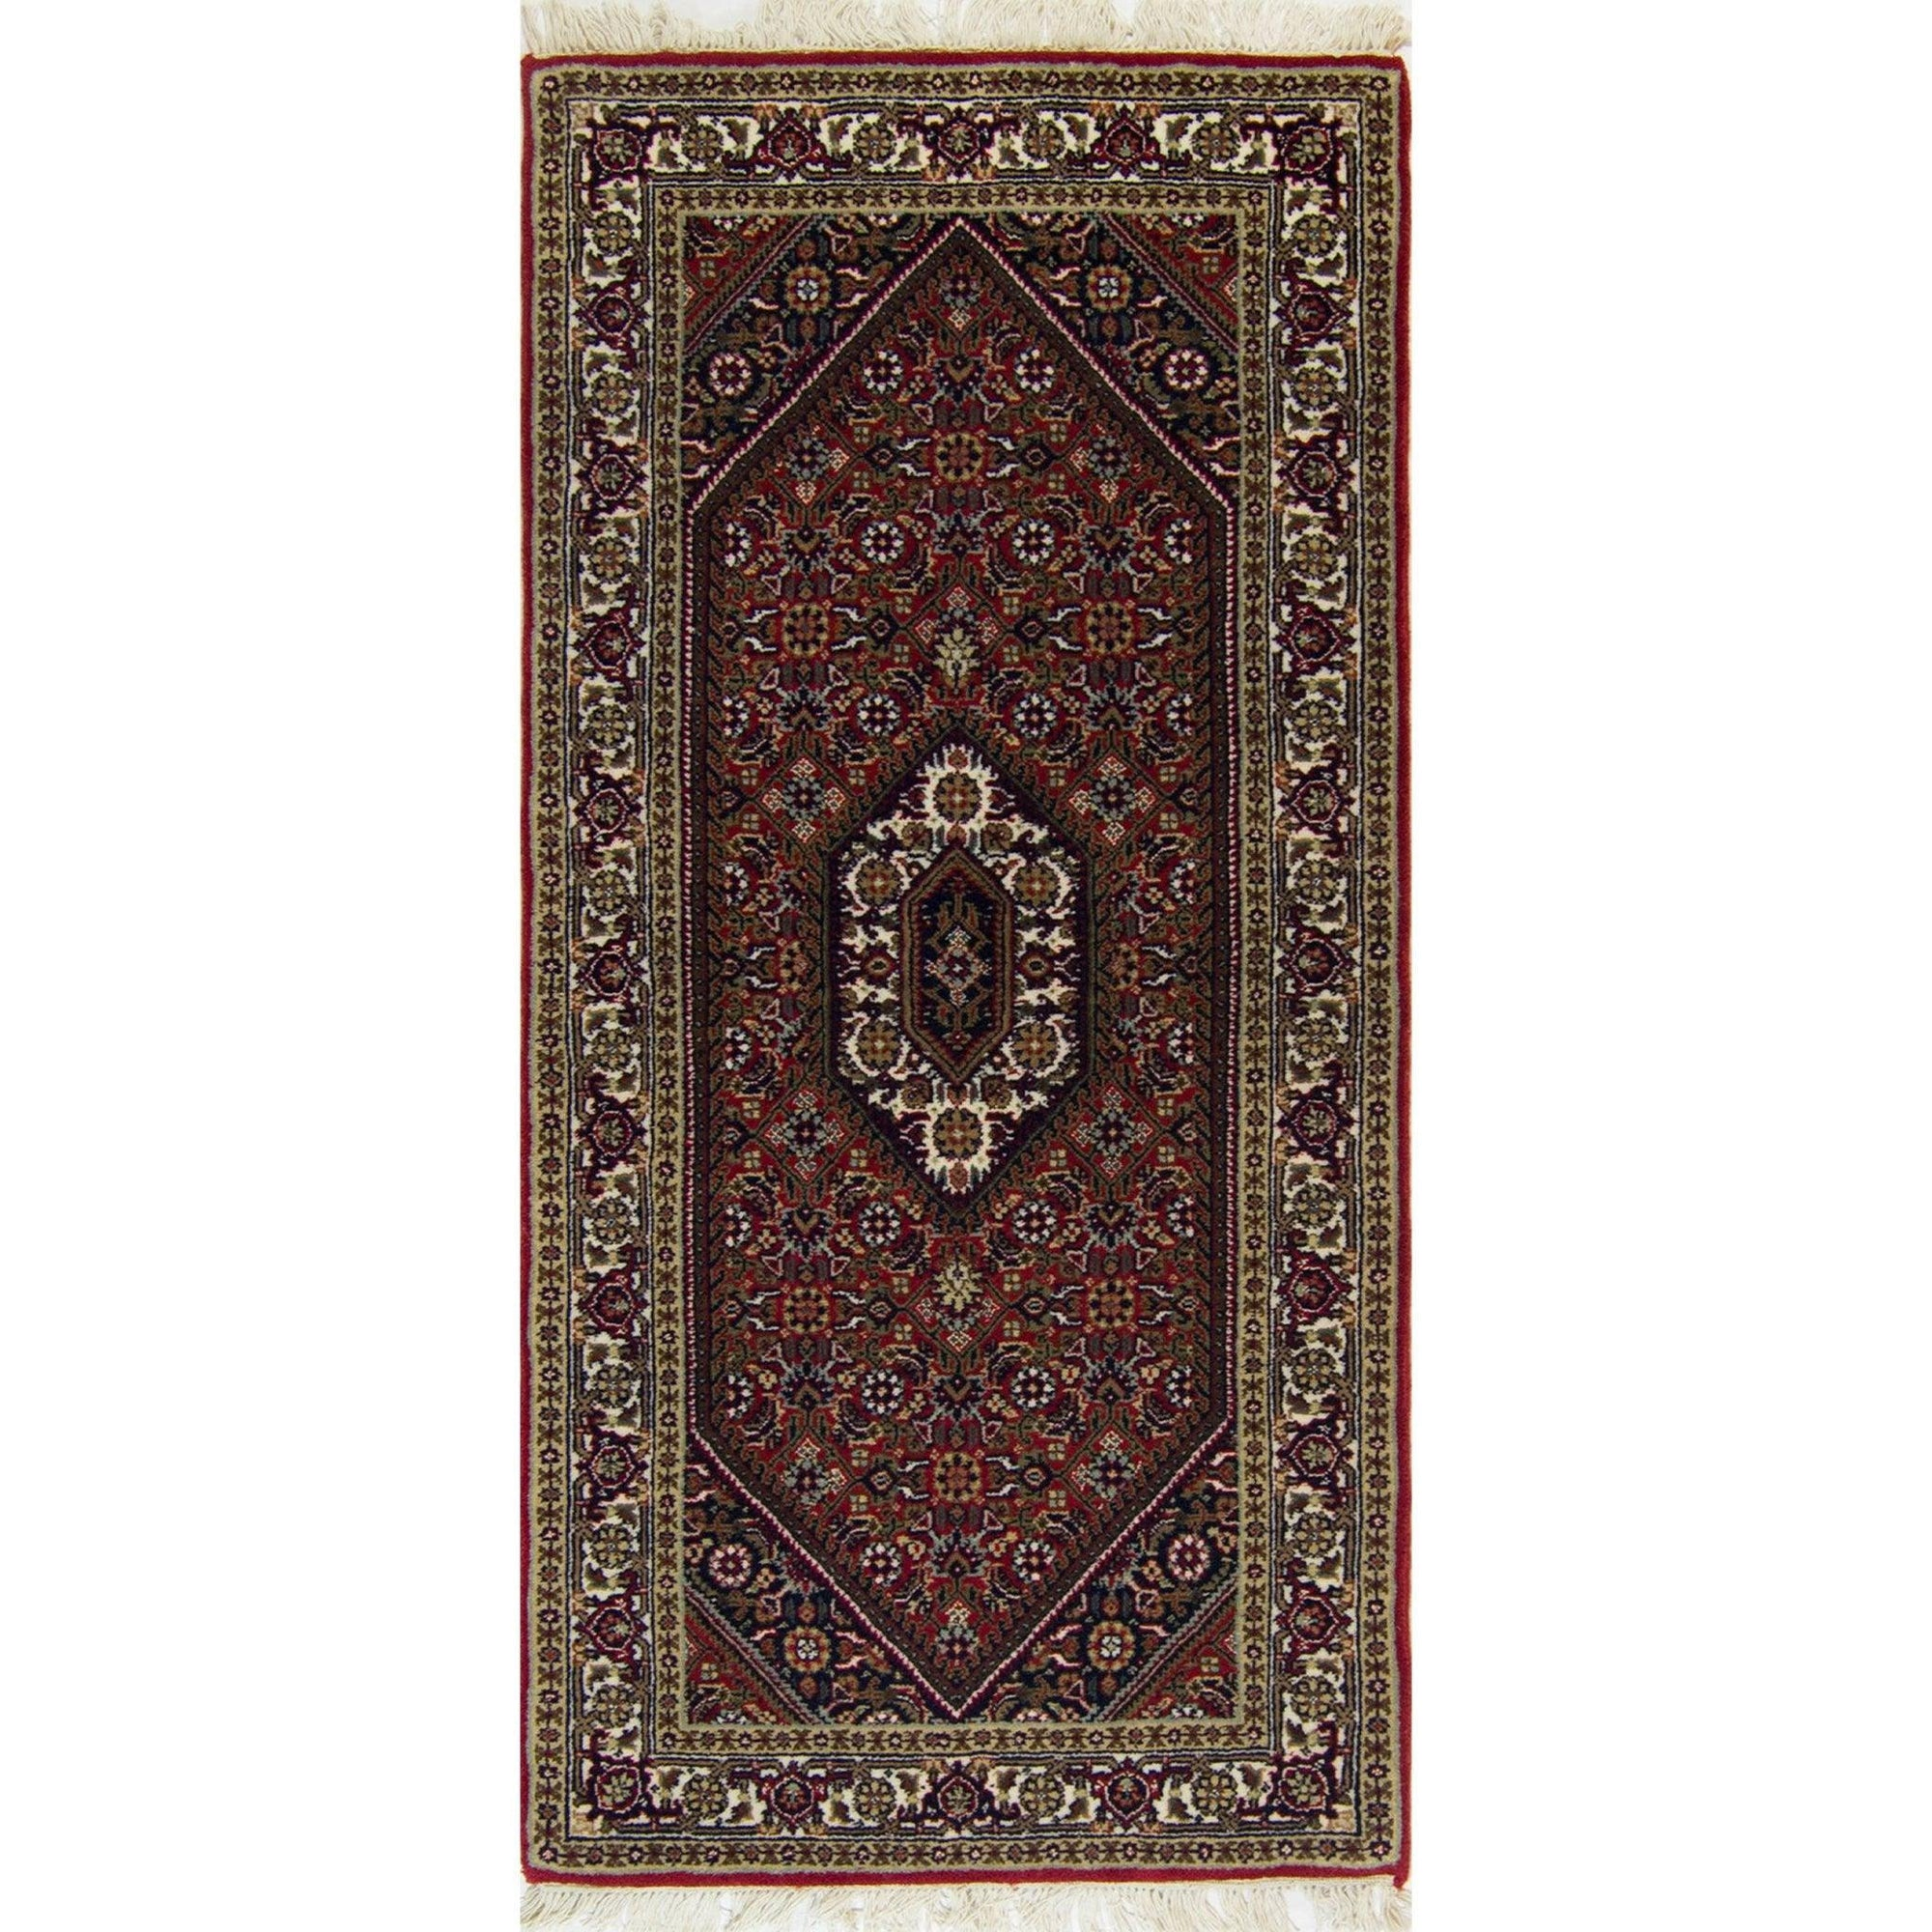 Fine Hand made Super Bijar Rug 89cm x 161cm Persian-Rug | House-of-Haghi | NewMarket | Auckland | NZ | Handmade Persian Rugs | Hand Knotted Persian Rugs